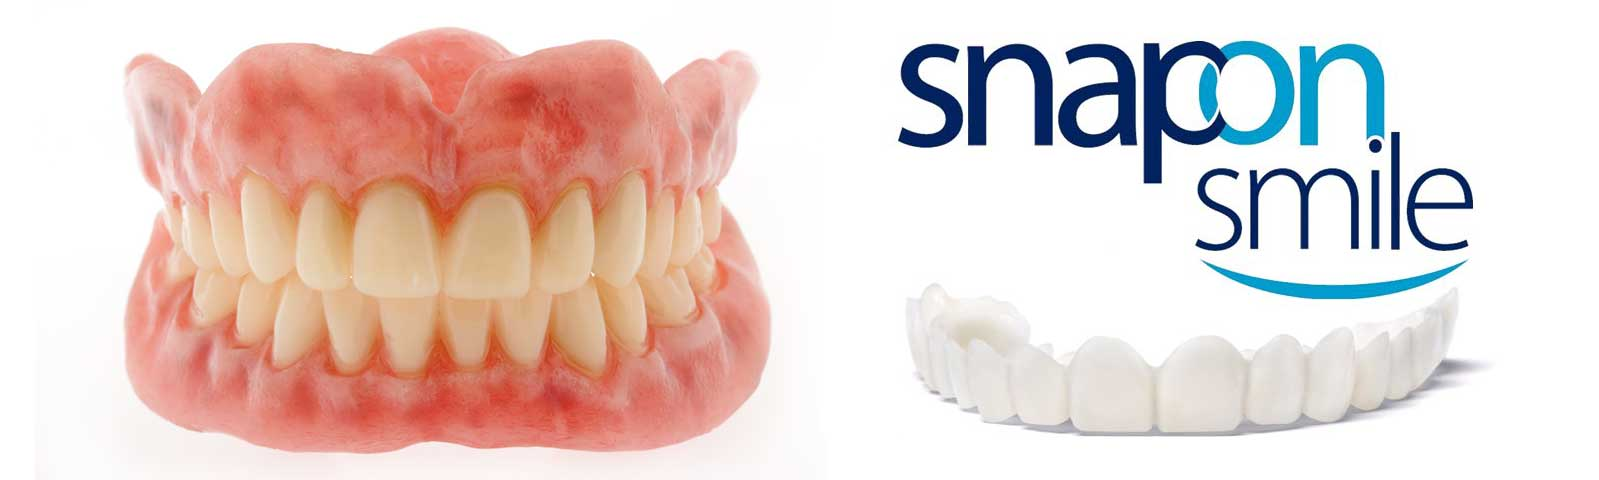 About us denture cosmetics affordable dentures solutioingenieria Choice Image